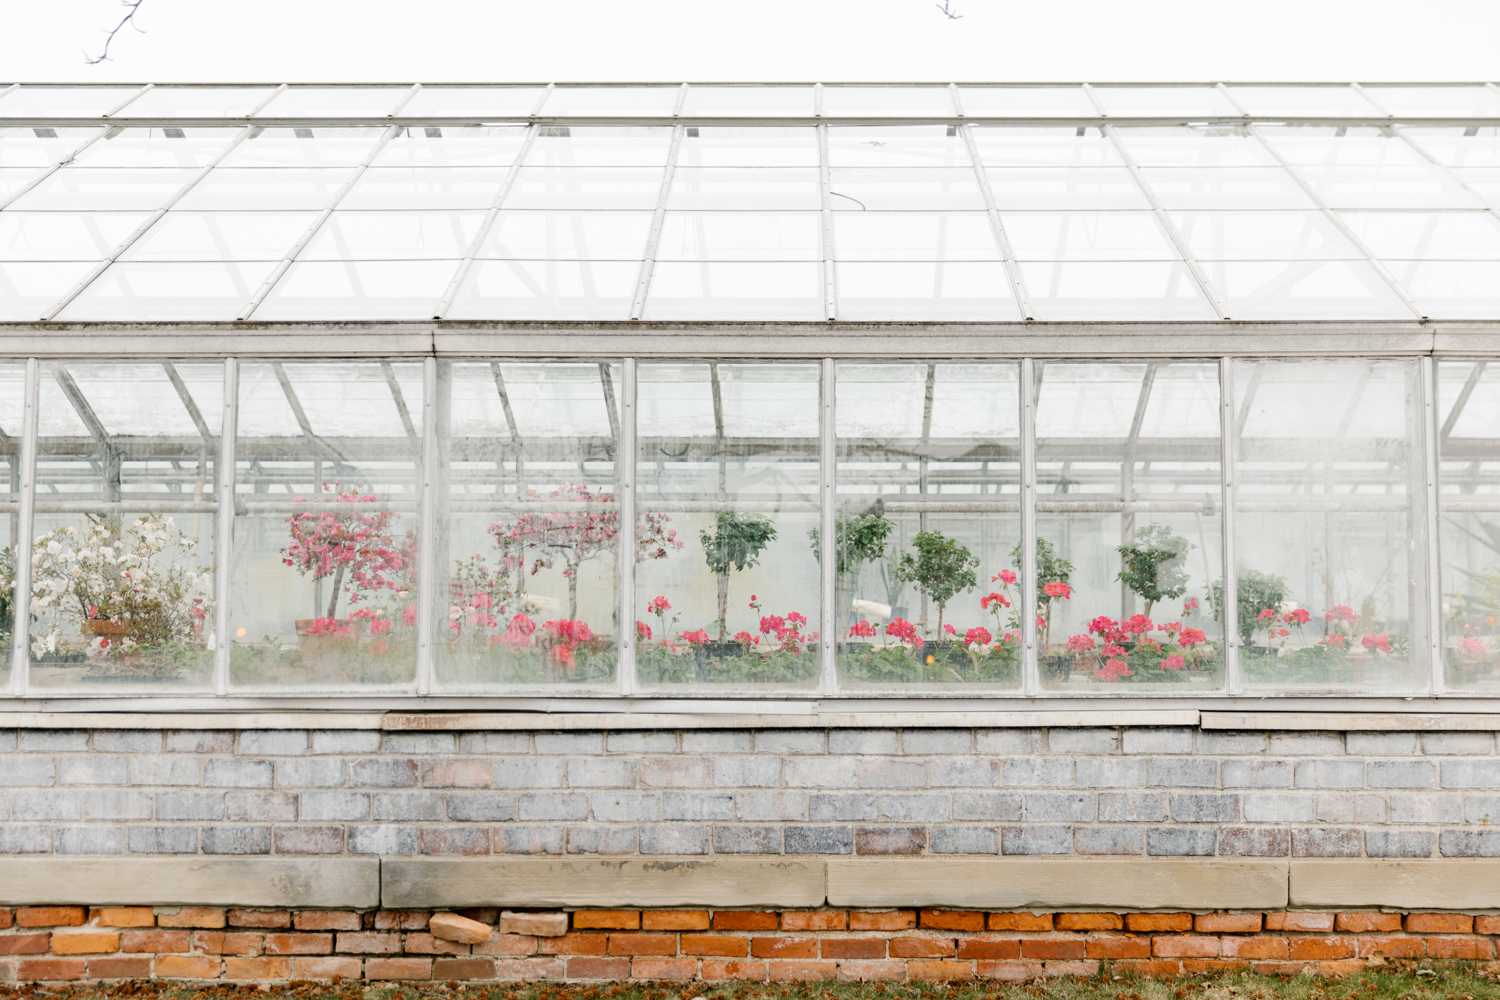 The Anna Scripps Whitcomb Conservatory is a greenhouse and a botanical garden located on Belle Isle, a 982-acre island park located in the Detroit River between Detroit and the Canada–United States border.